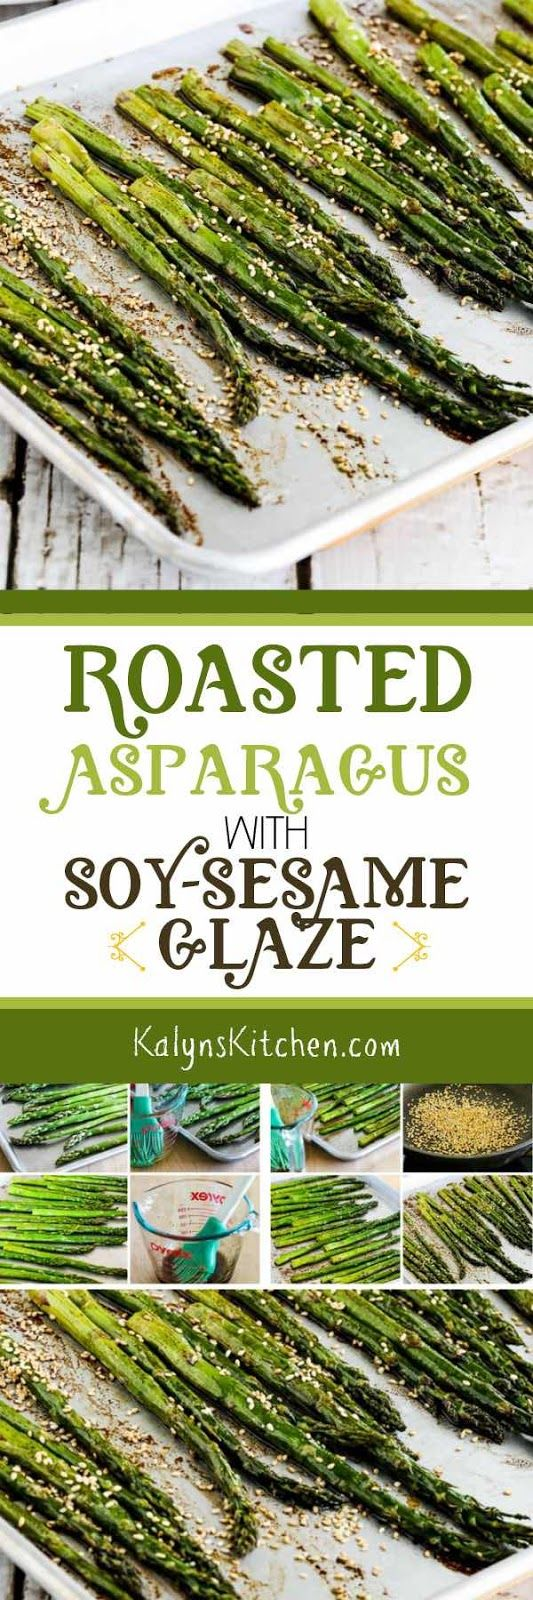 Roasted Asparagus with Soy-Sesame Glaze is an amazing quick and easy asparagus side dish that's low-carb, Keto, low-glycemic, gluten-free (with gluten-free soy sauce), vegan, and South Beach Diet friendly, and if you sub Coconut Aminos for the soy sauce this can be Paleo or Whole 30. Try it, you'll like it! [found on KalynsKitchen.com.]